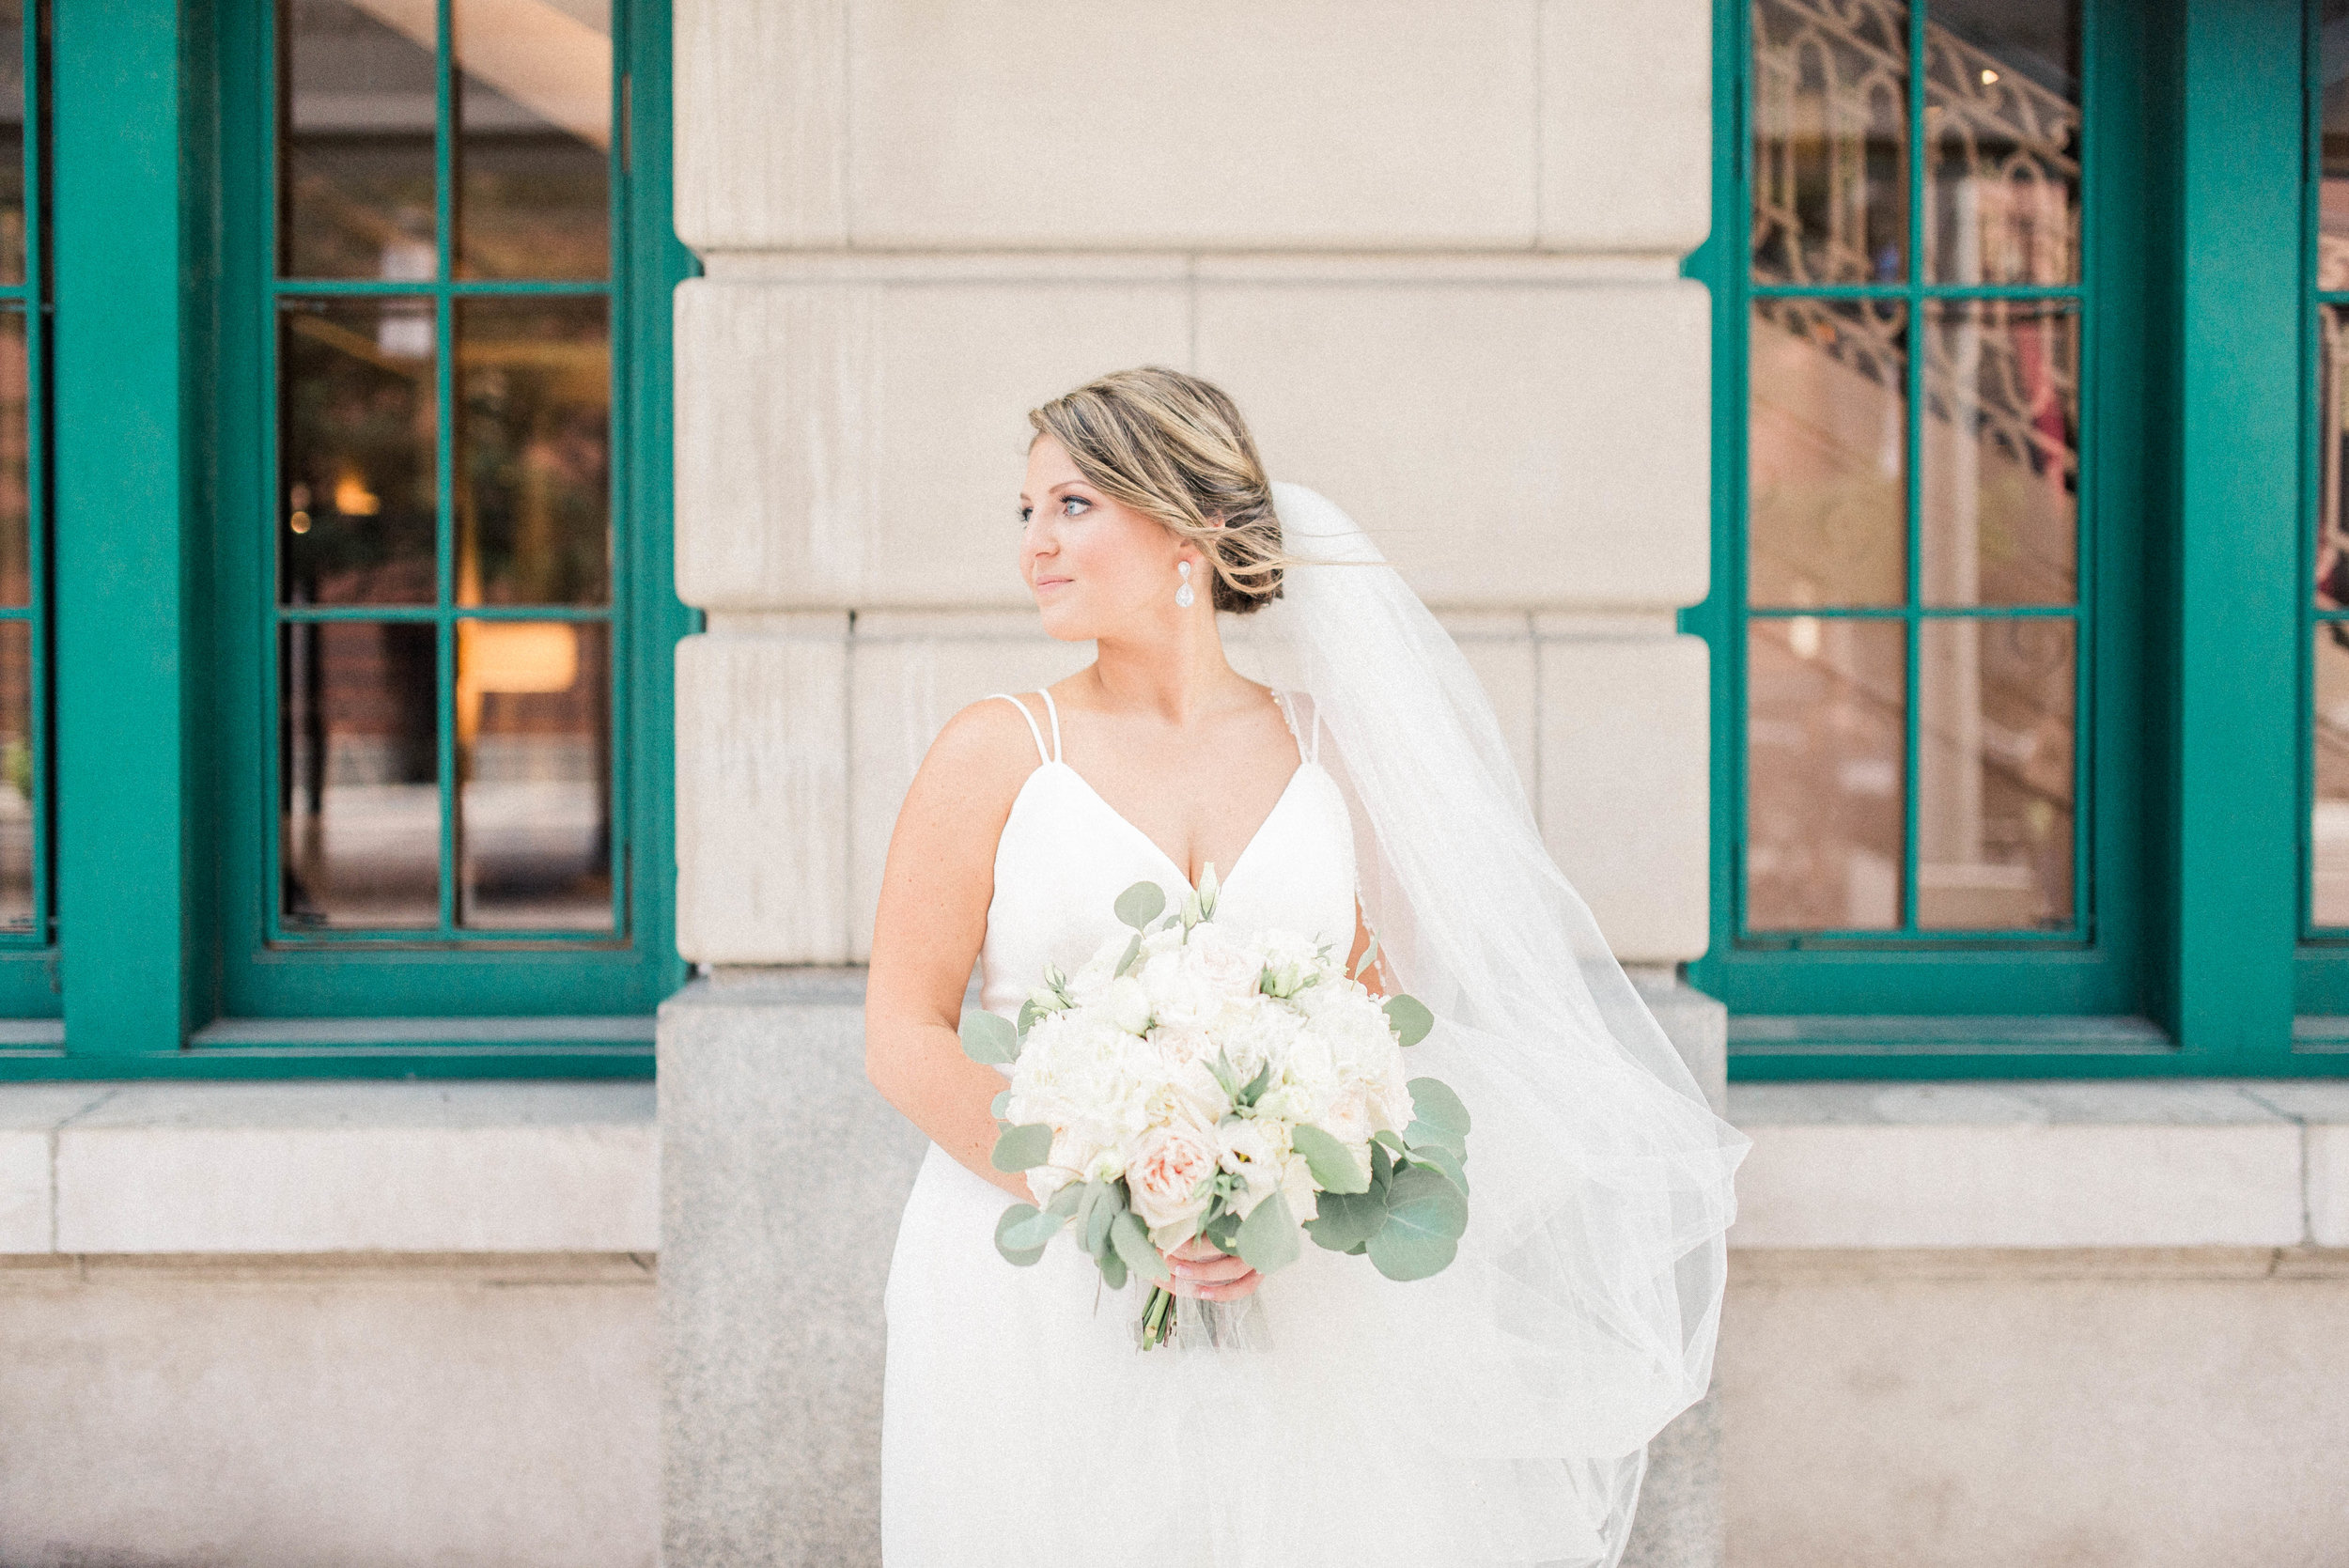 Lyndsey + Drew | A Classic Timeless and Romantic Wedding at the Omni Severin Hotel | International Indianapolis Elopement & Destination Wedding Photographers